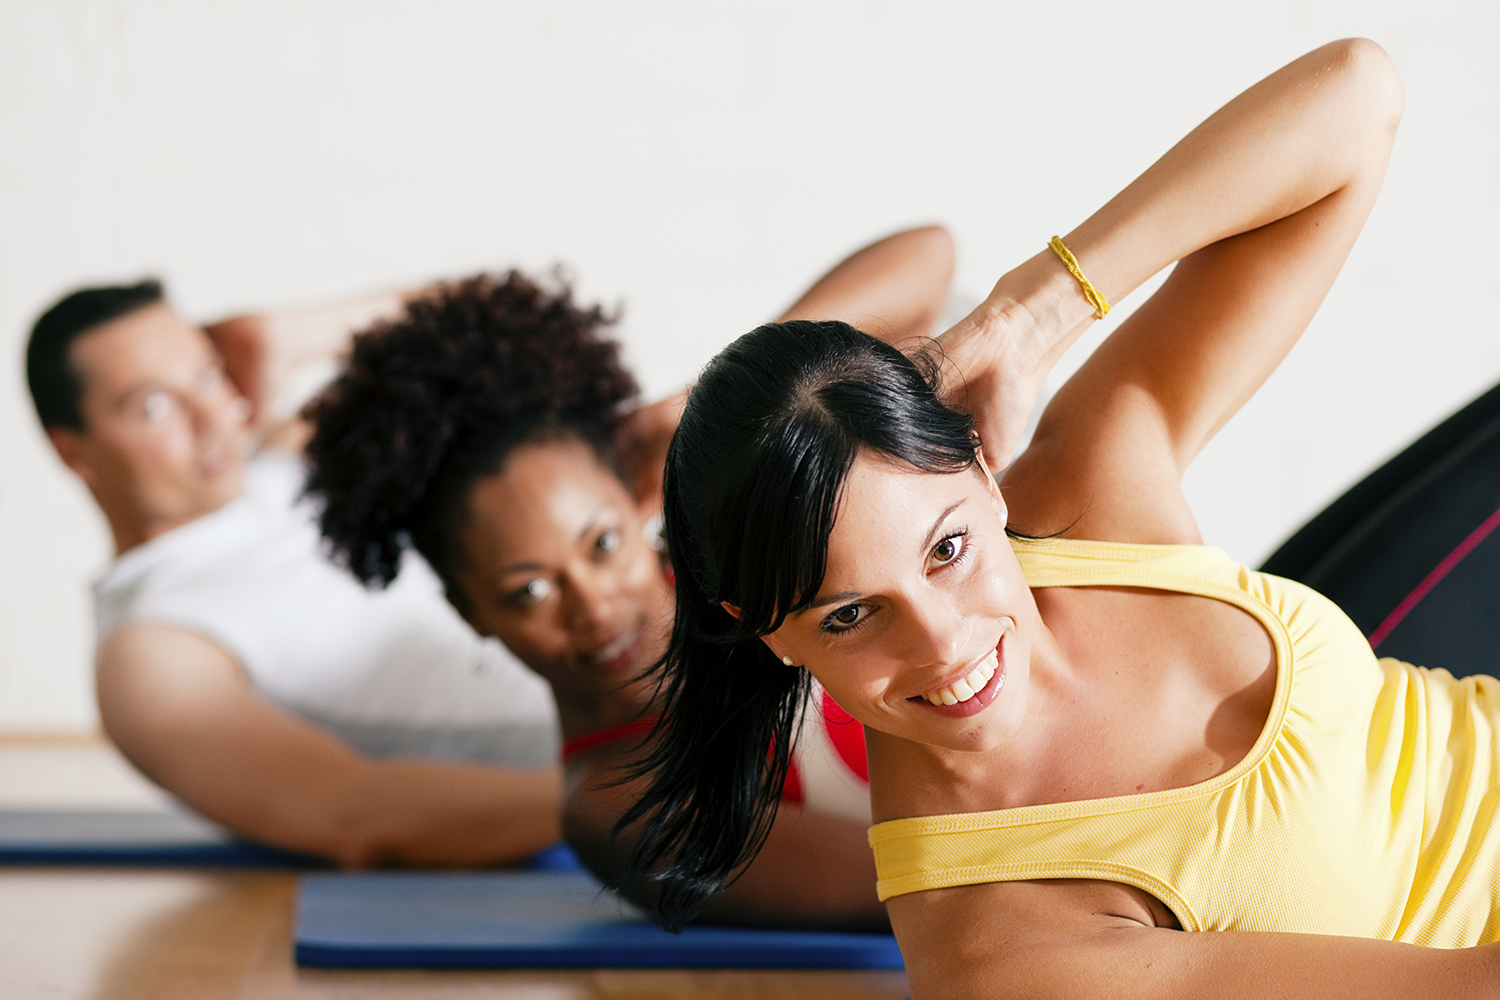 iStock_Sit-ups in gym11269060-edit.jpg